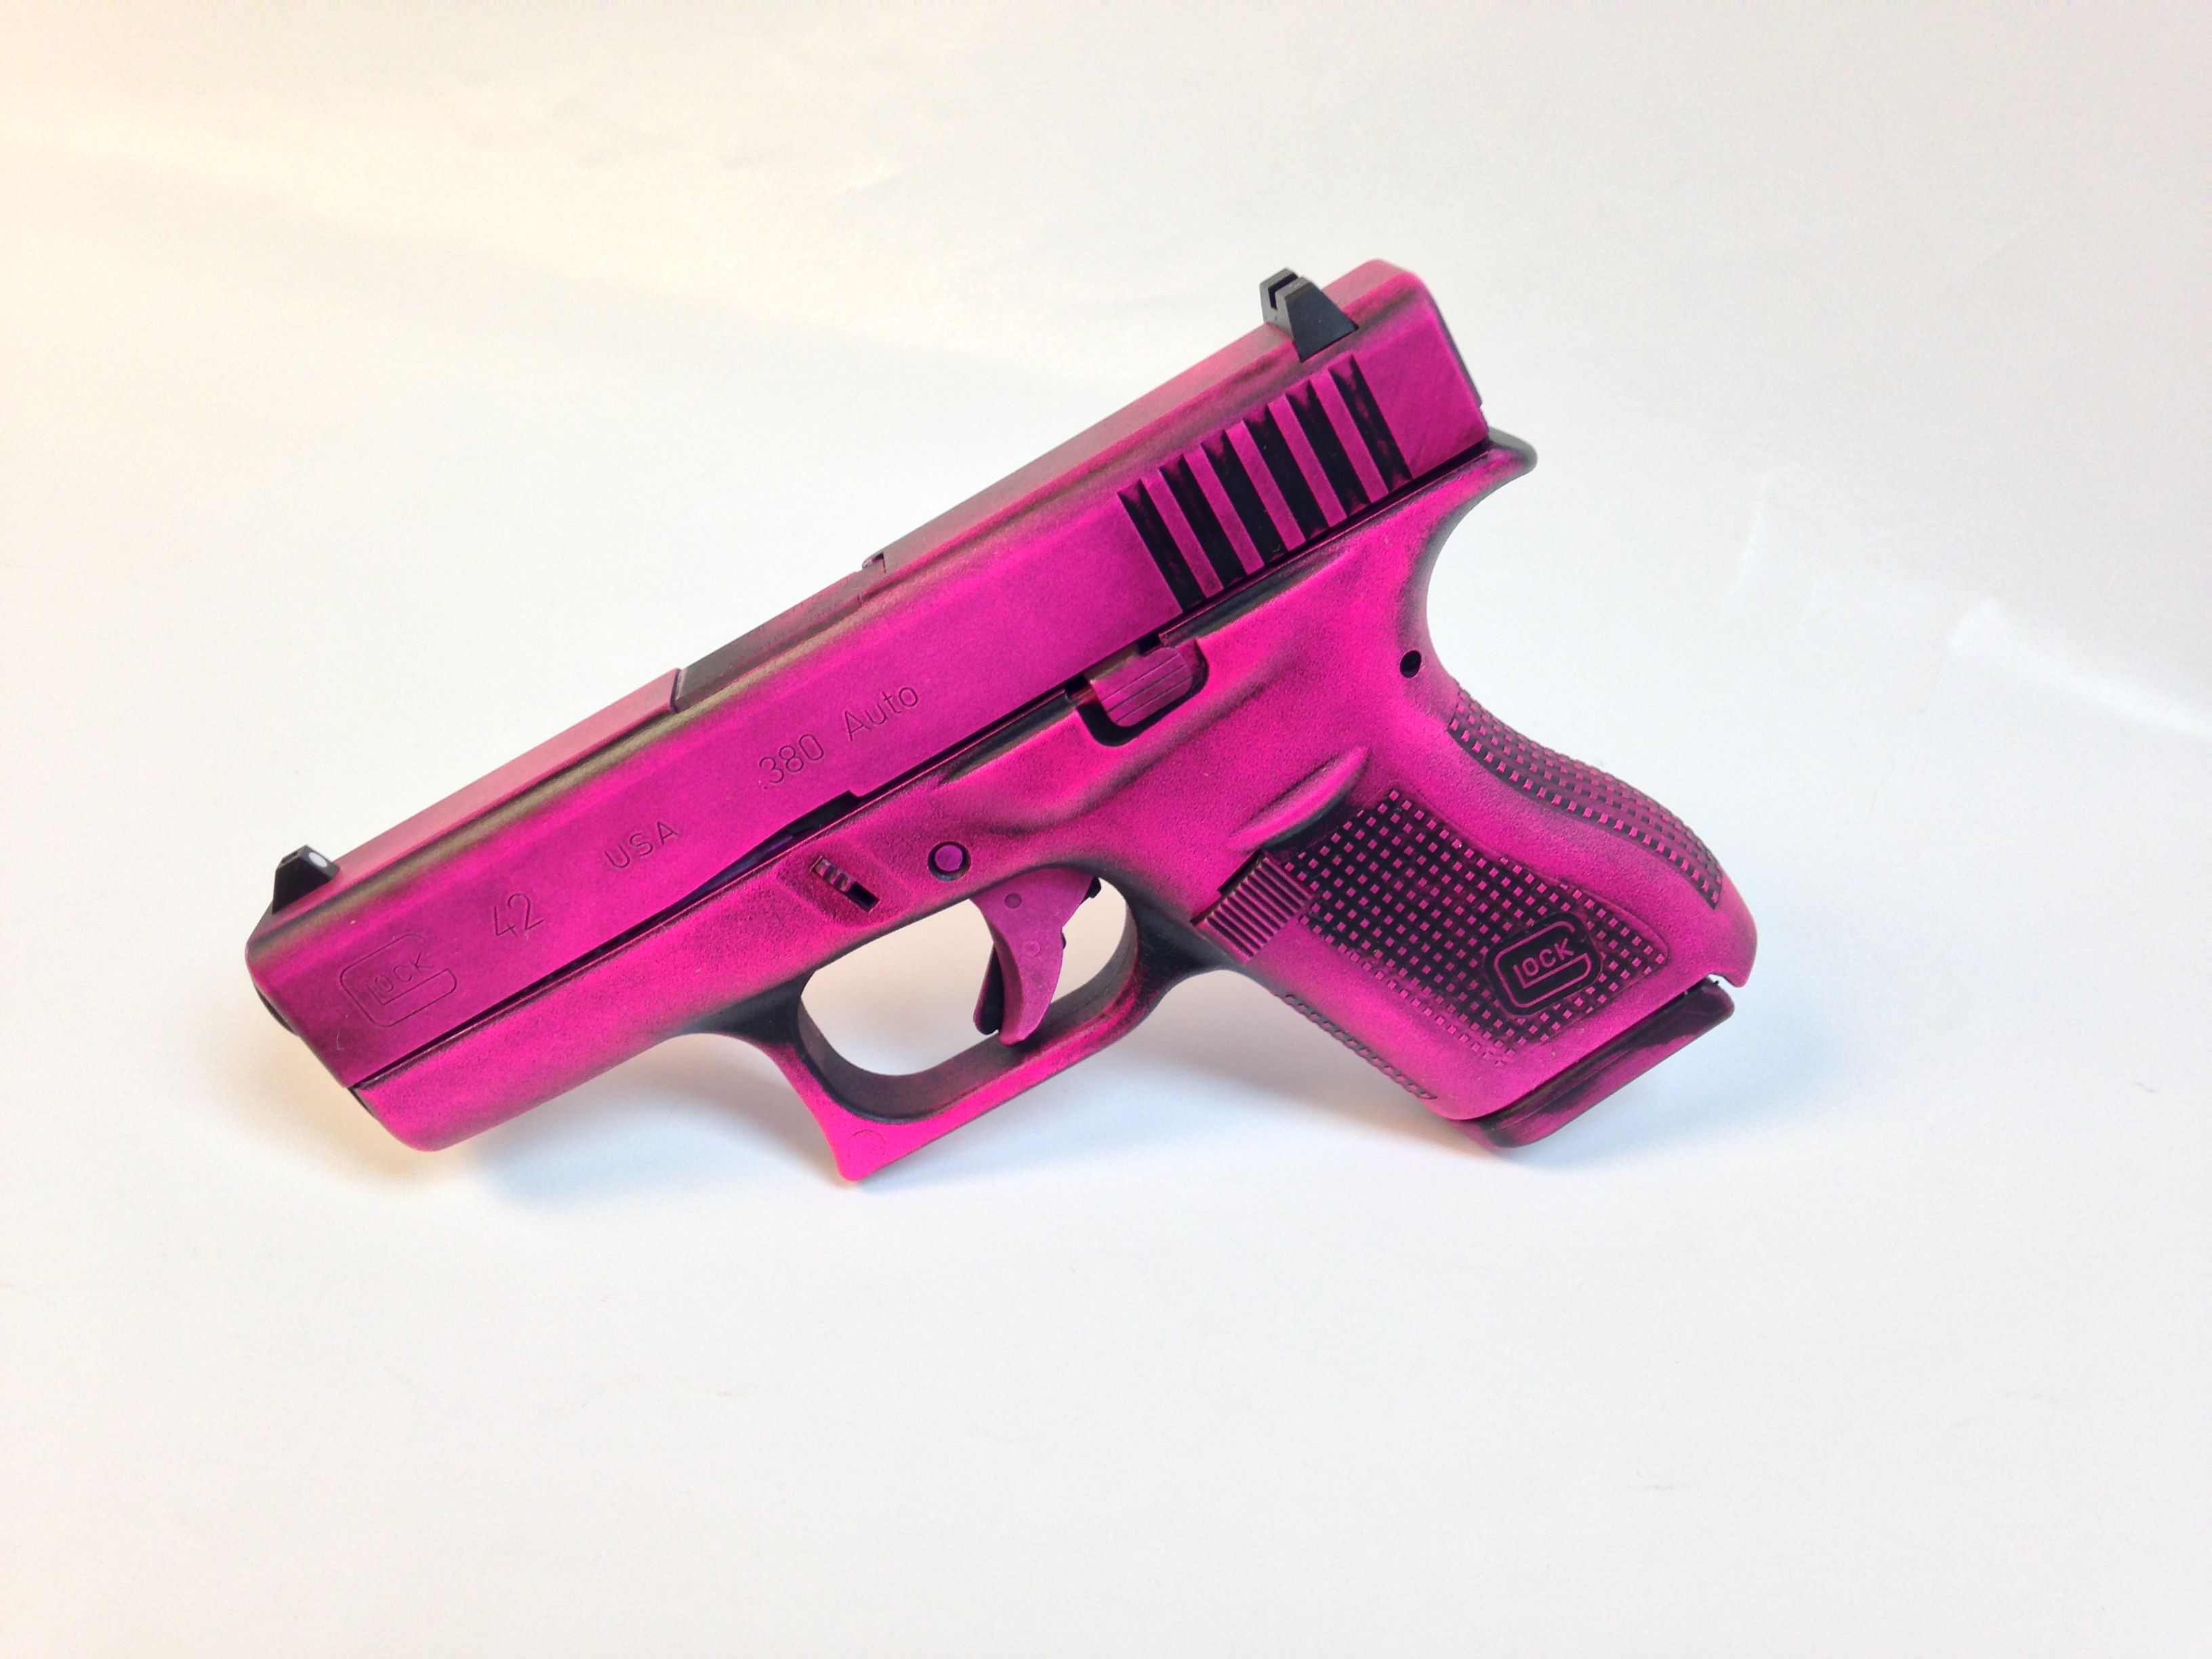 Details about GLOCK 42 Purse Holster PINK RH SUB Creative Conceal ...